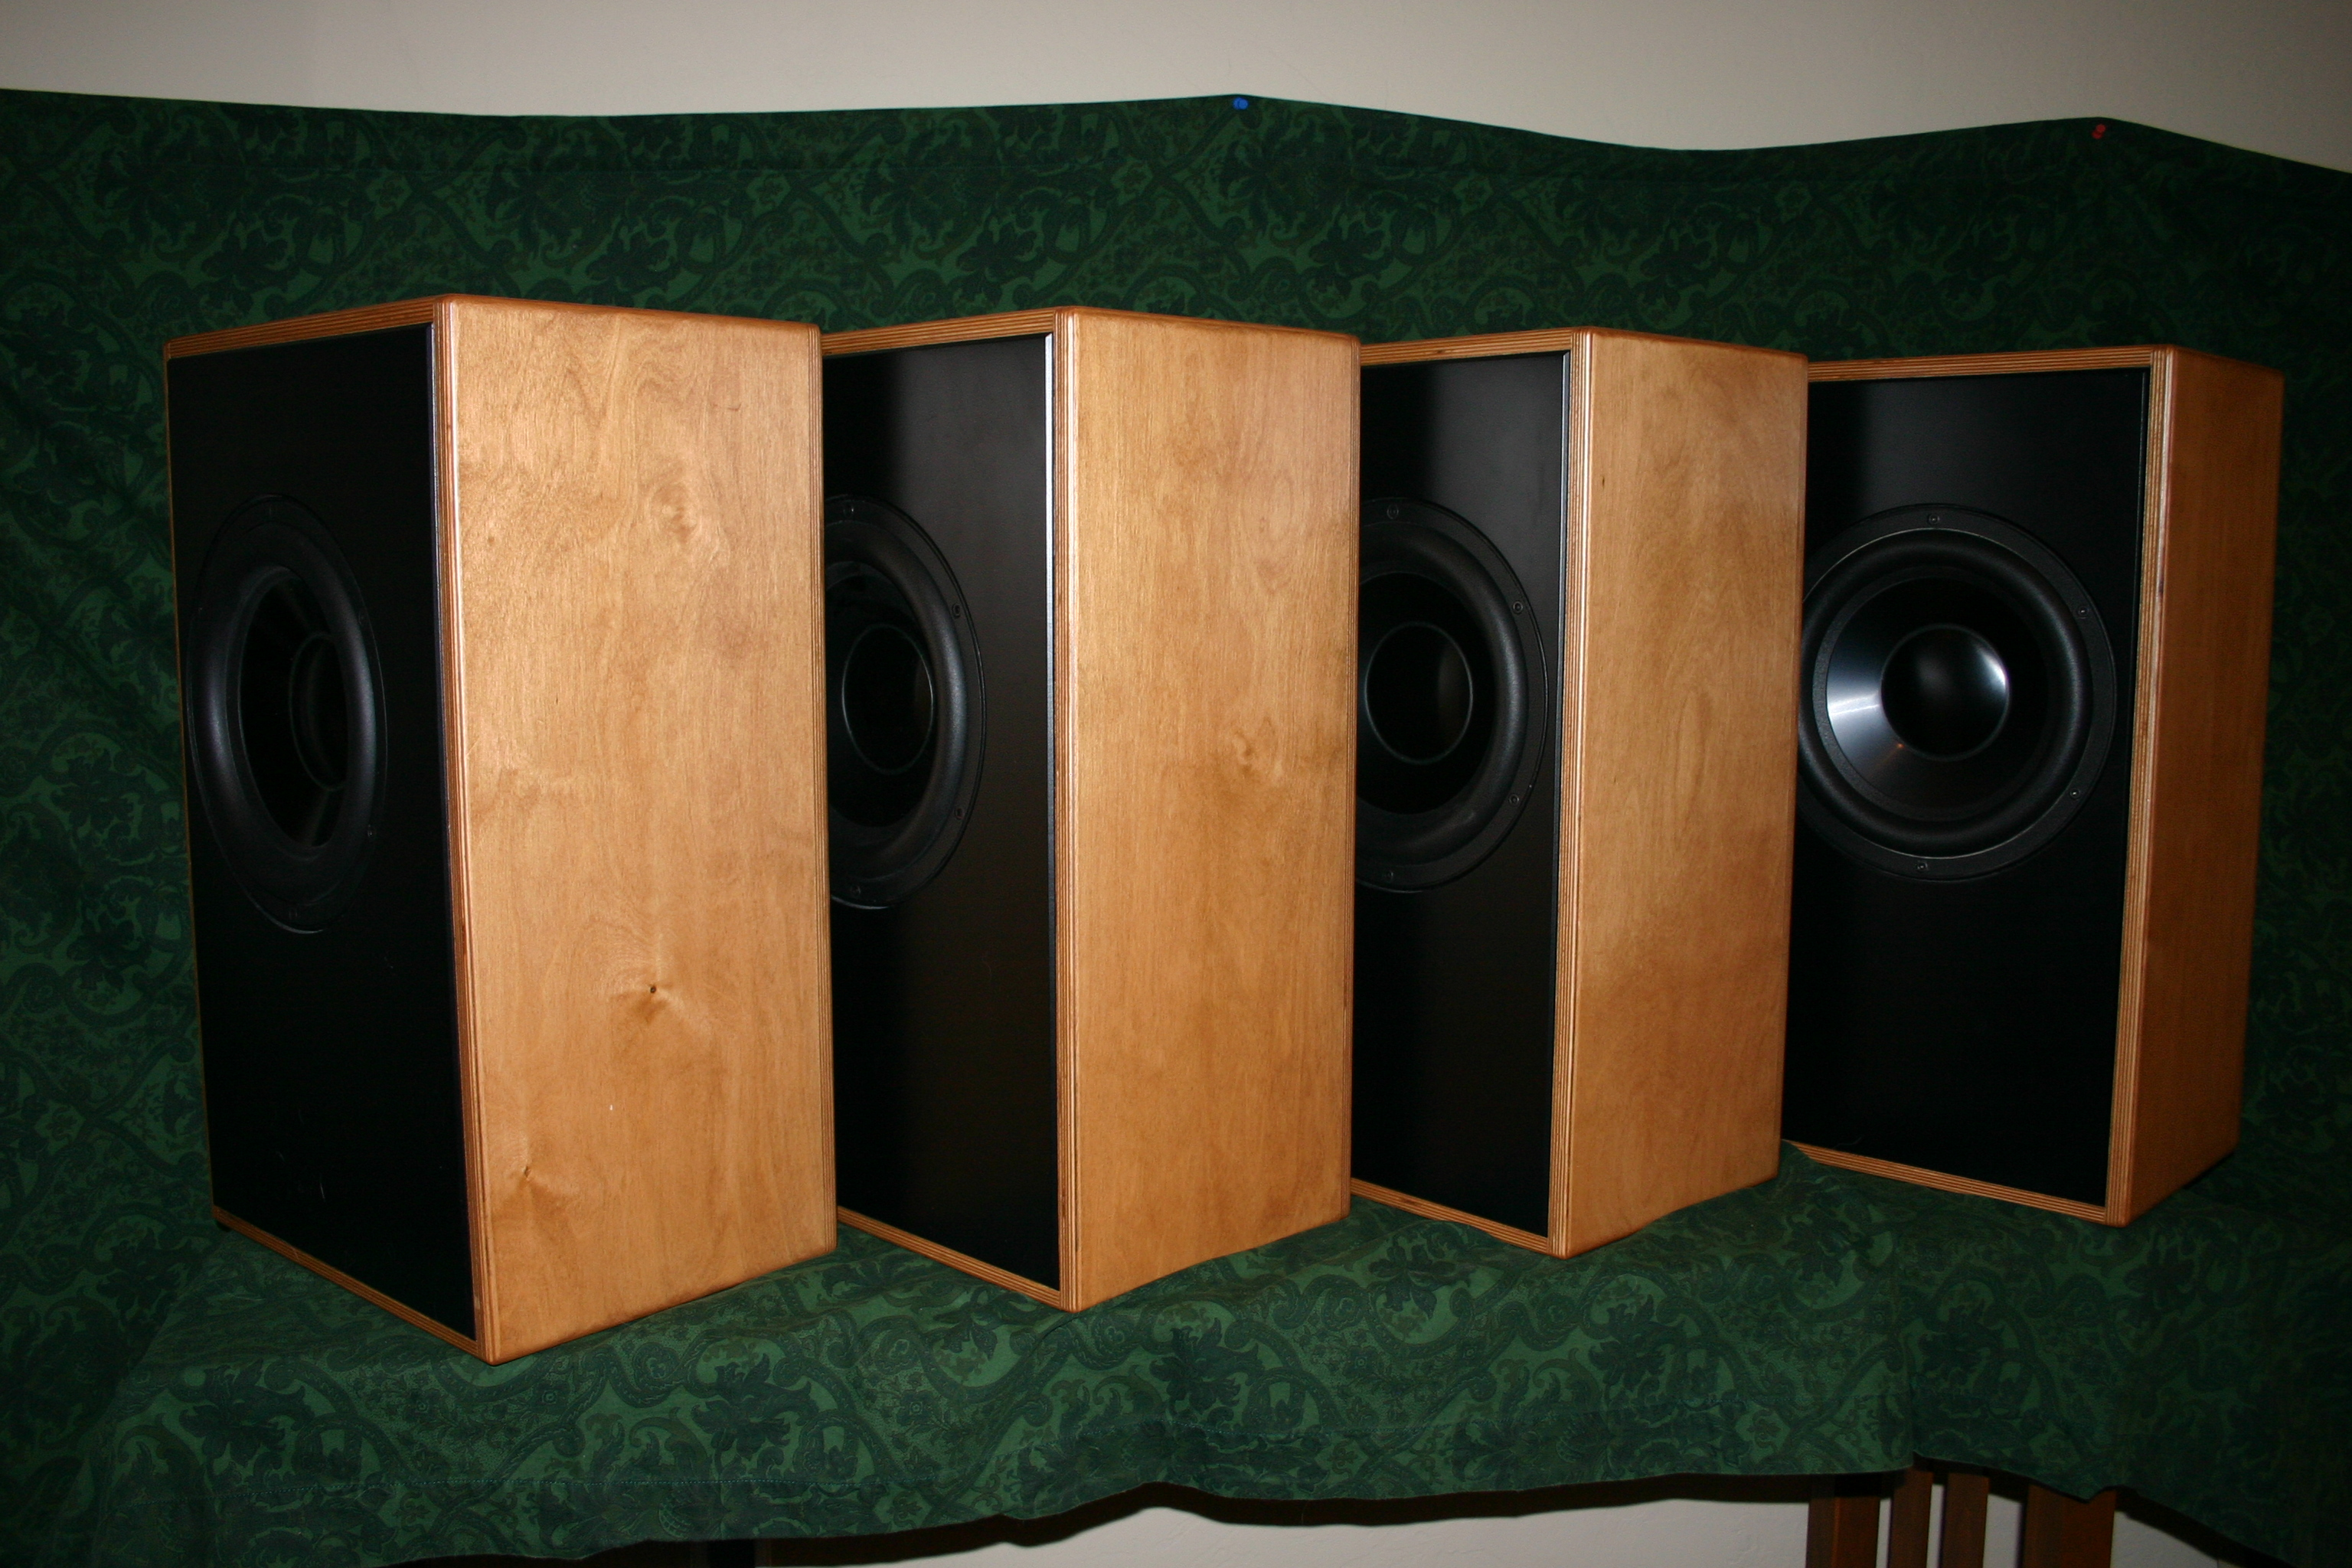 Debra Distributed Eq Bass Reflex Array 5 Pieces James Romeyn Subwoofers Will Consistent Power To Both Maximizing Your Black Baffles With Drivers Face The Walls